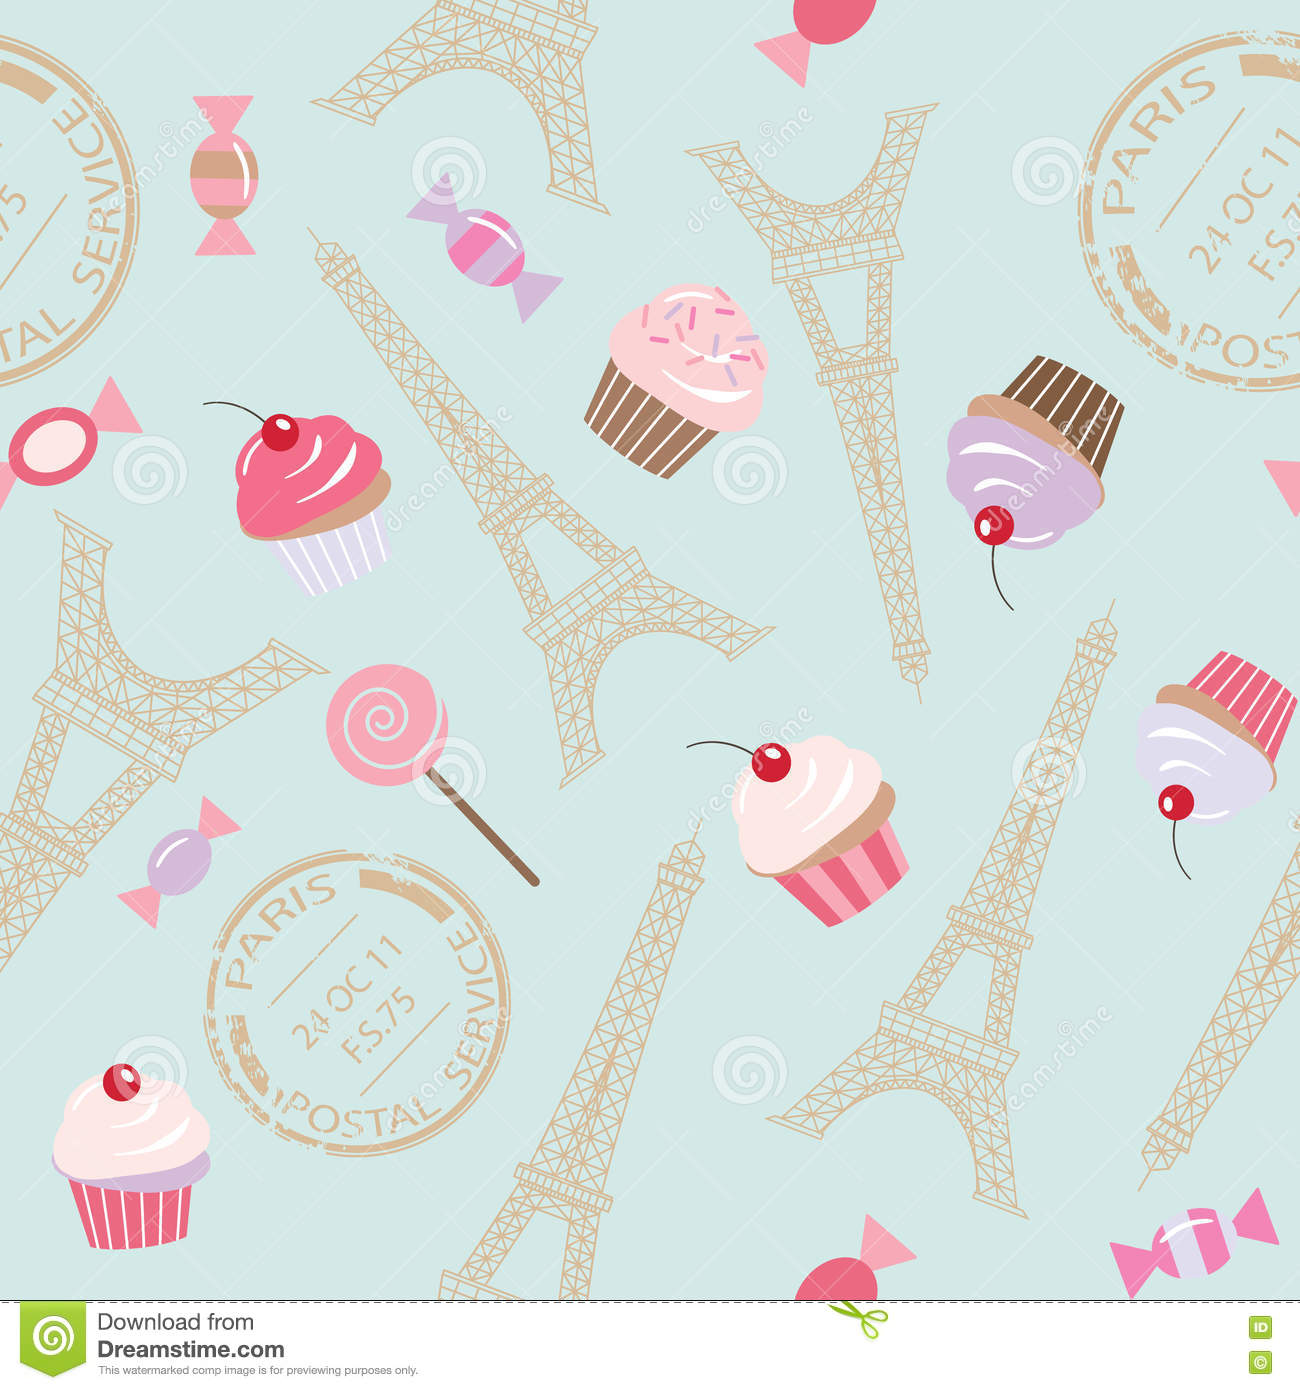 Cute Vintage Seamless Pattern Background With Eiffel Tower And